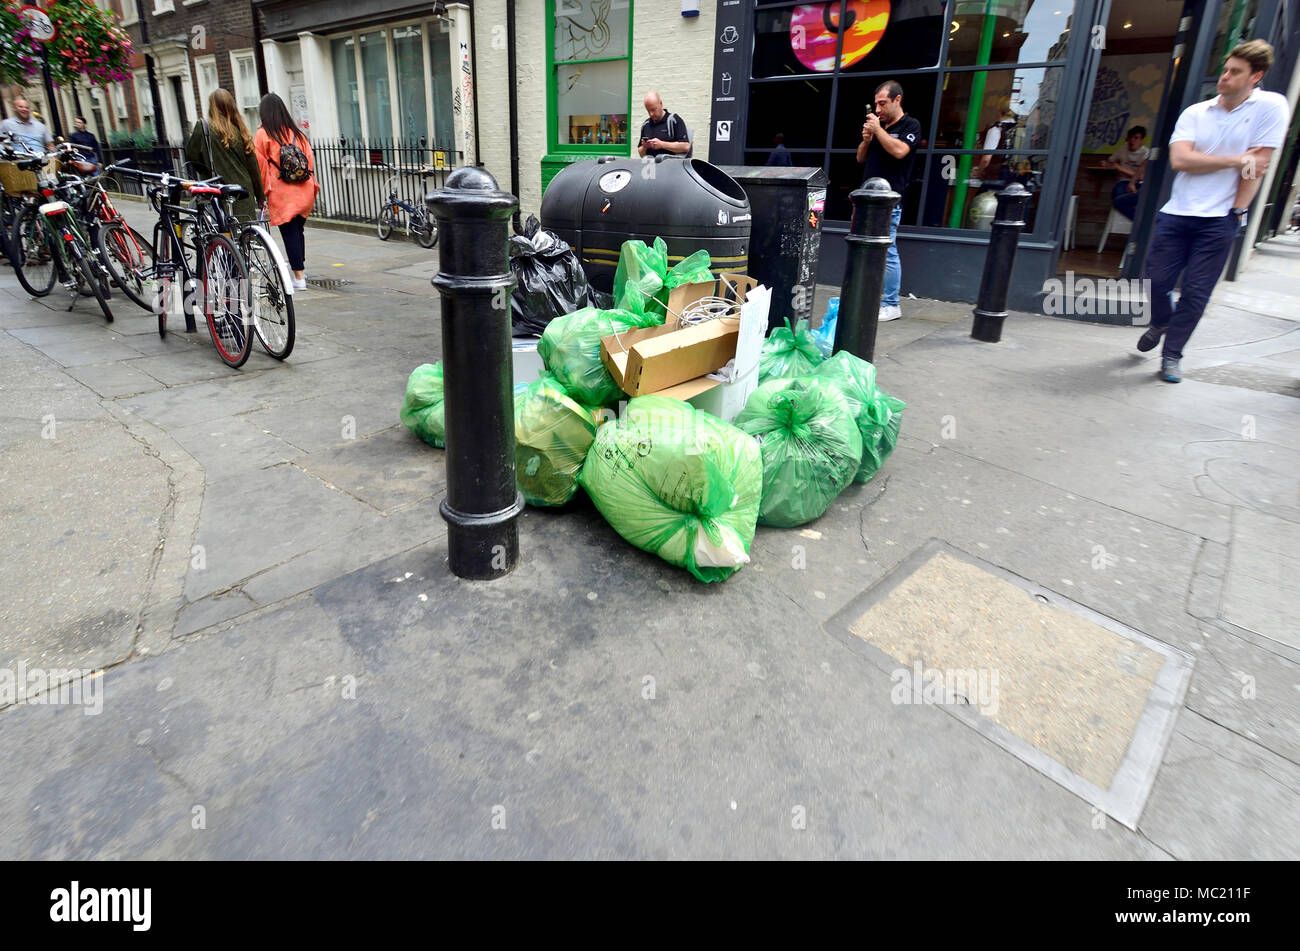 London, England, UK. Rubbish bags dumped around a bin in the street - Stock Image